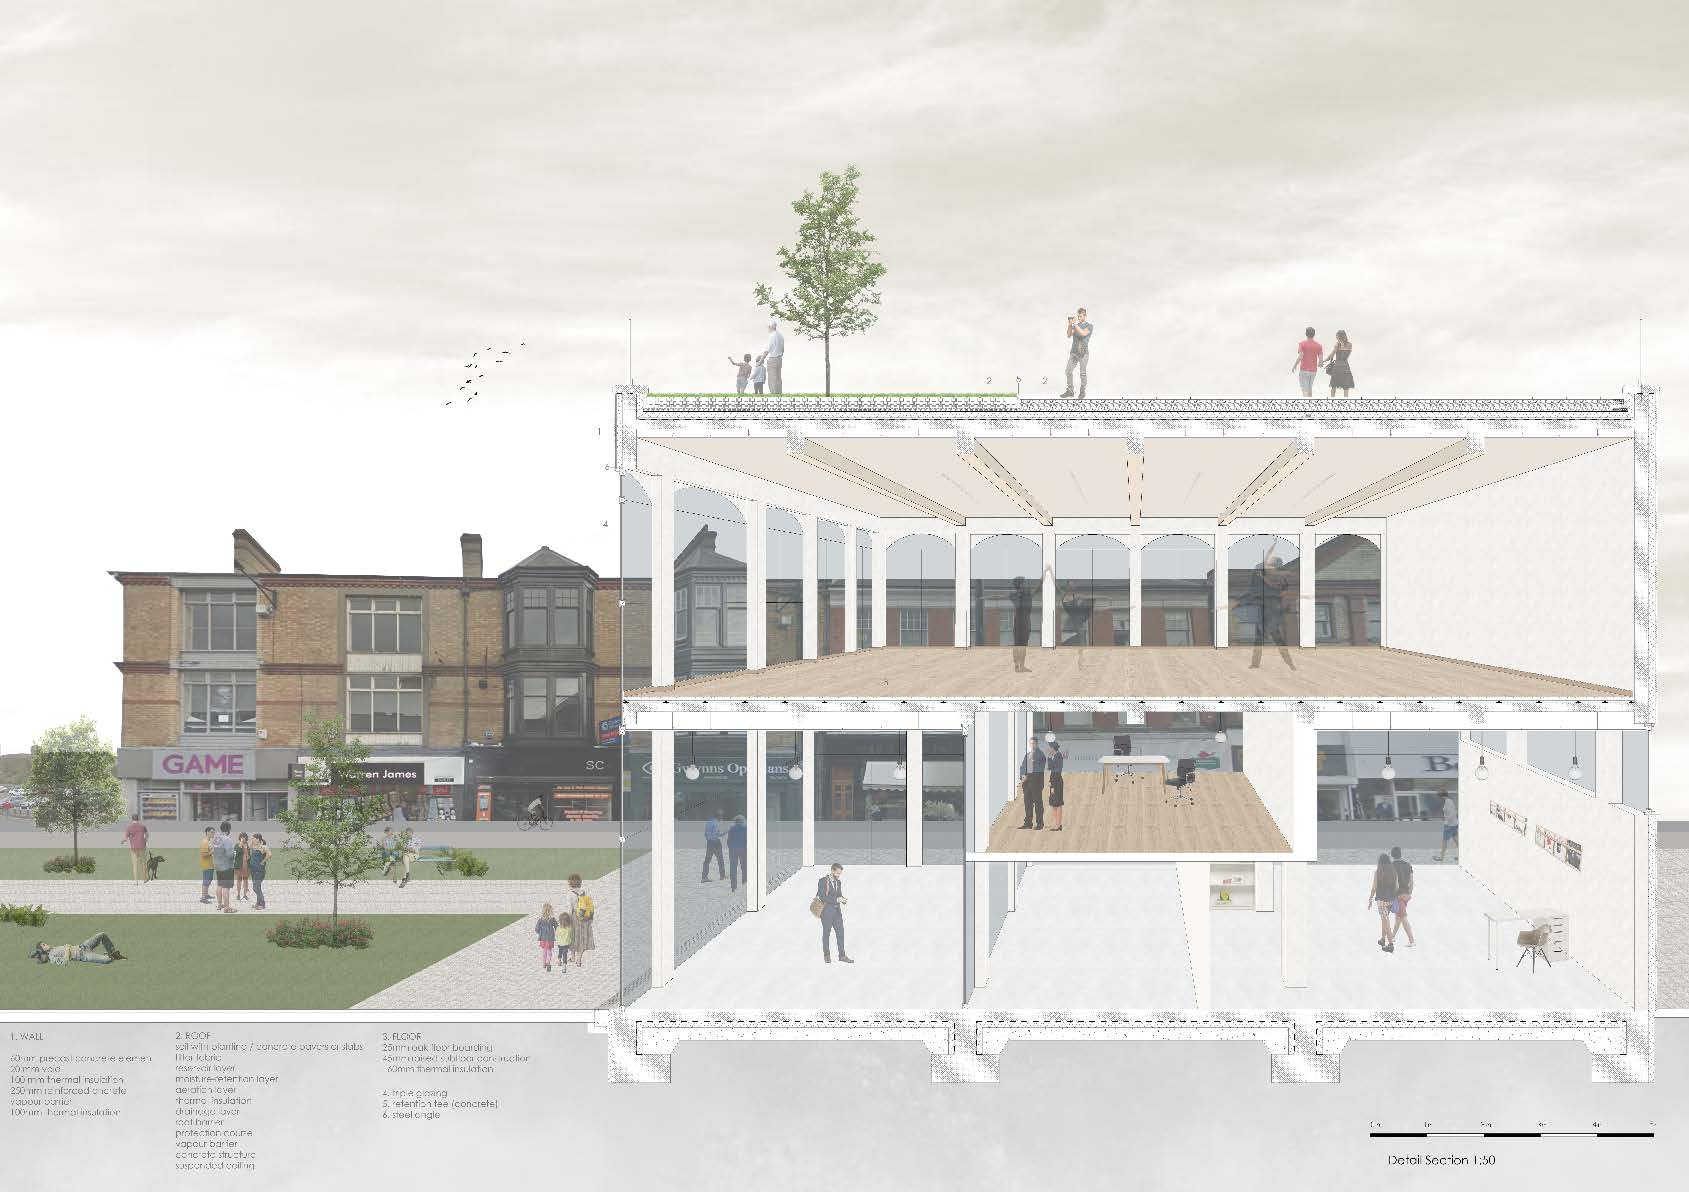 Image of a perspective section in context of Pontypridd by Kalina Vrachanska